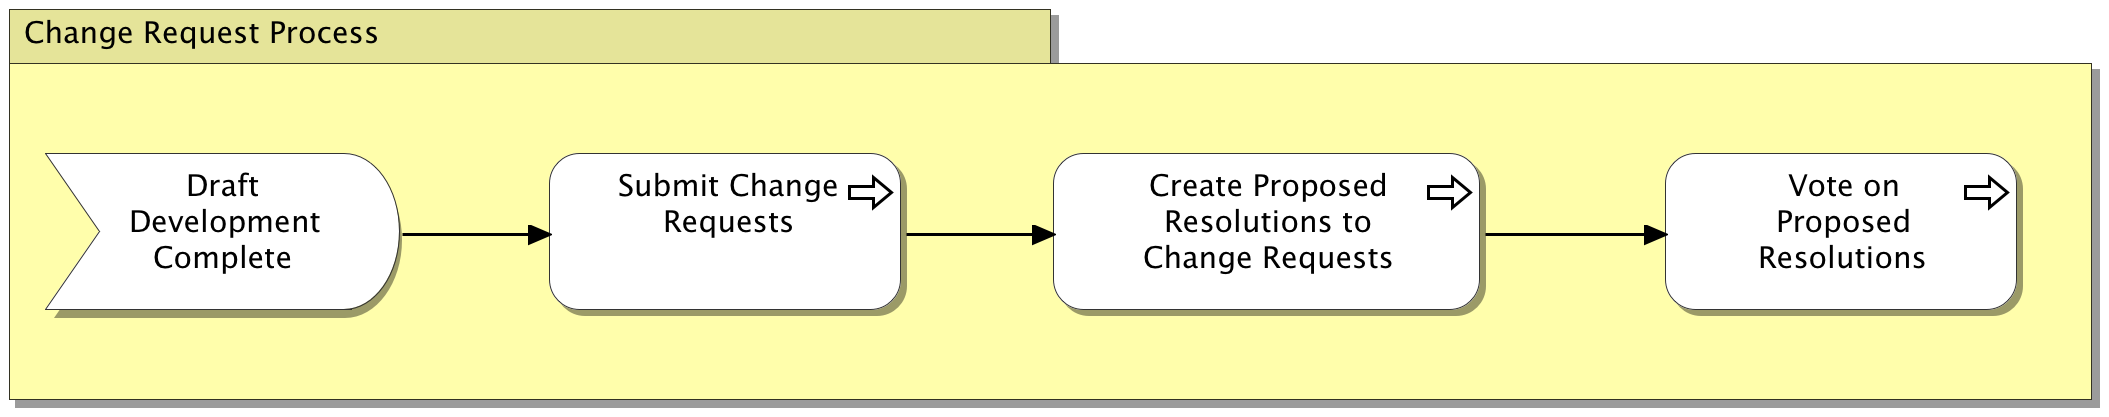 Change Request Process Diagram